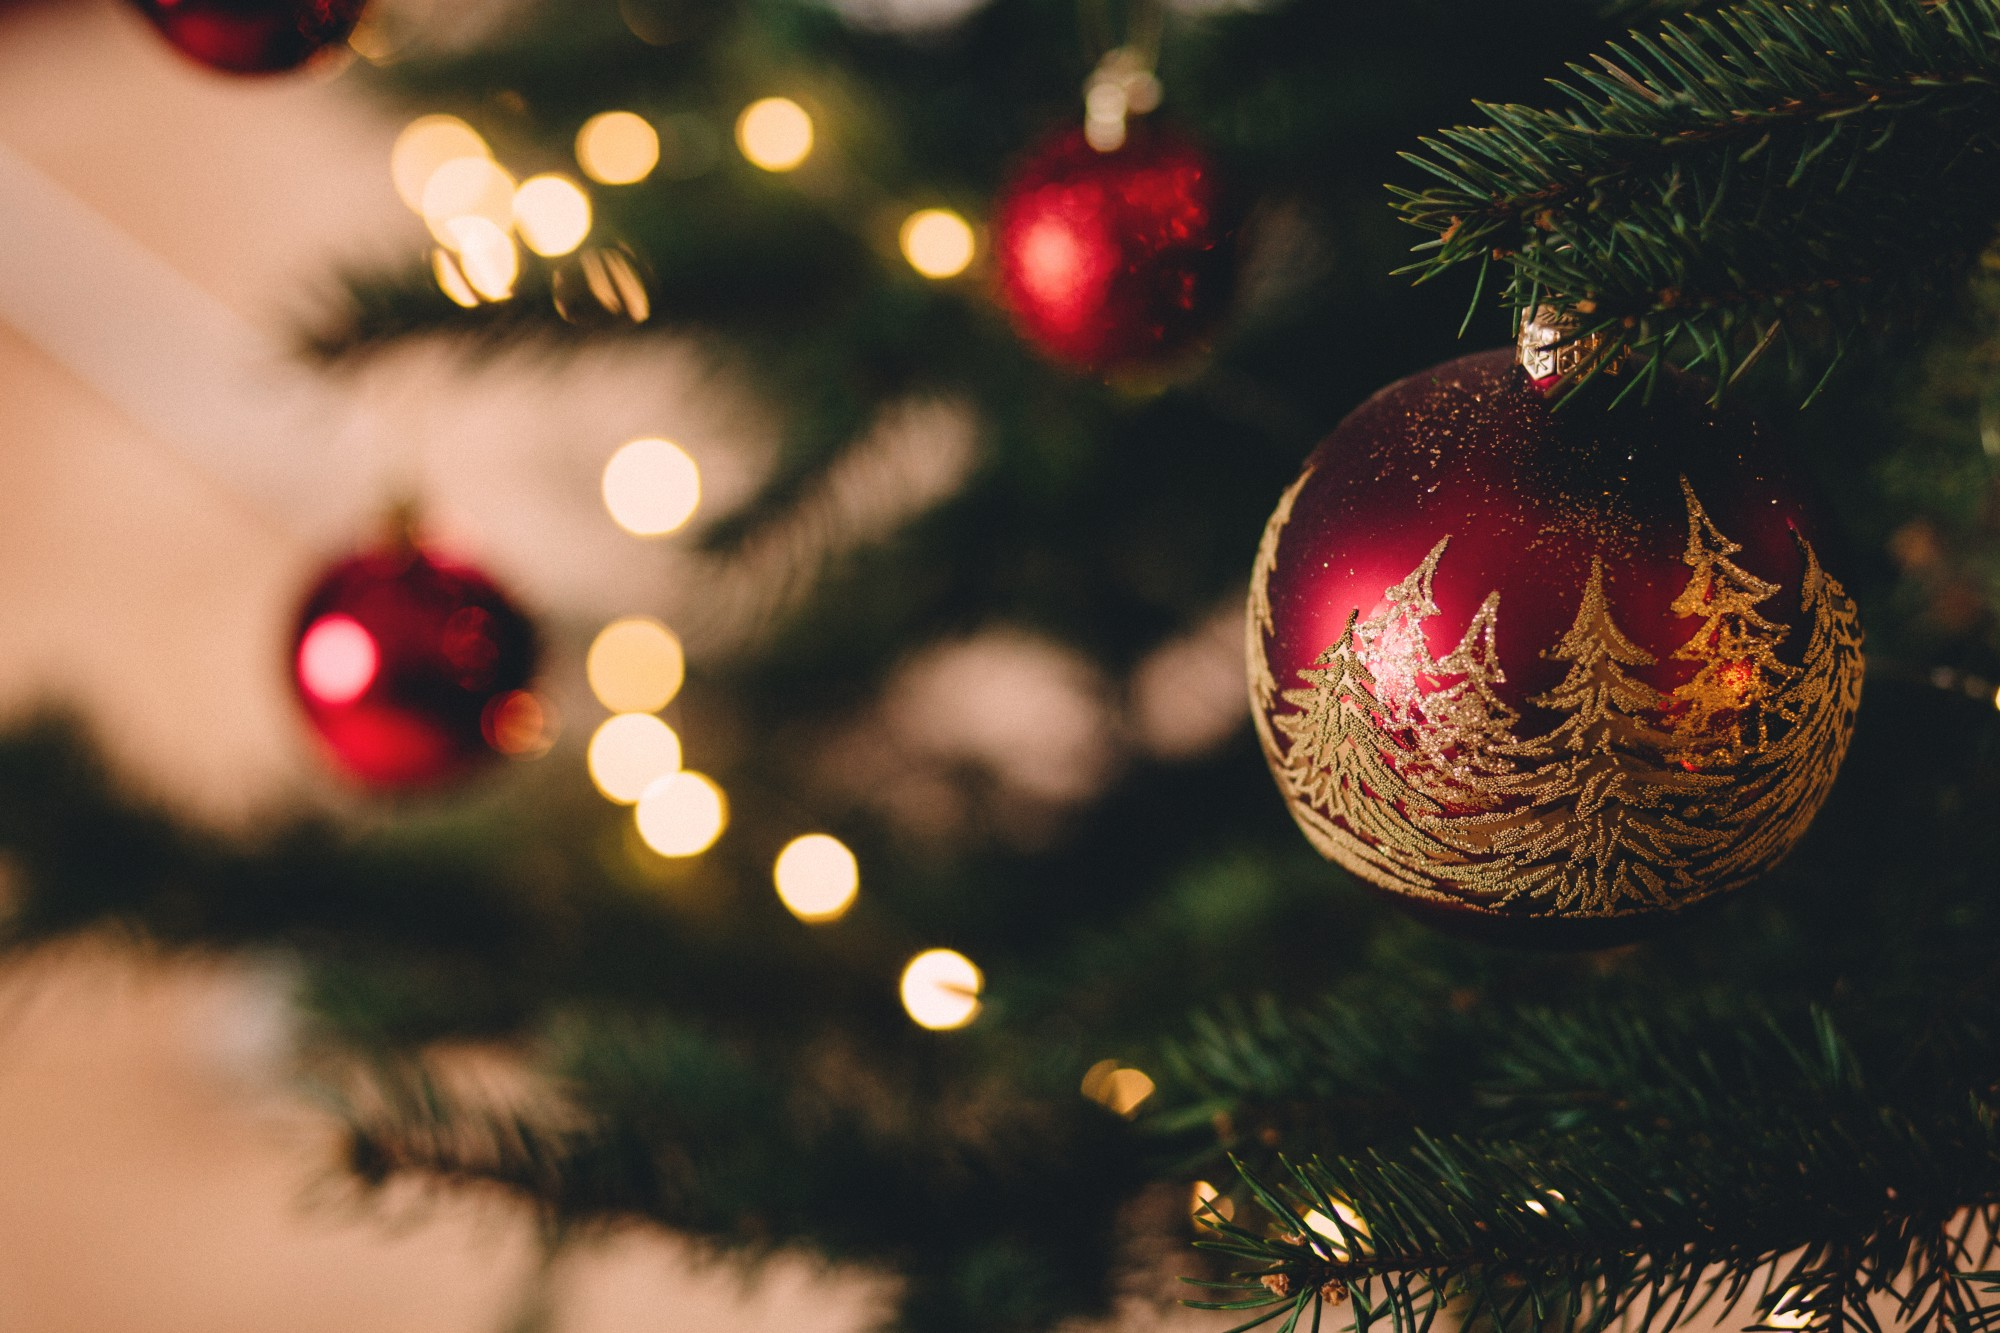 Is The Spirit Of Christmas Alive In Your Heart? – P.S. I Love You